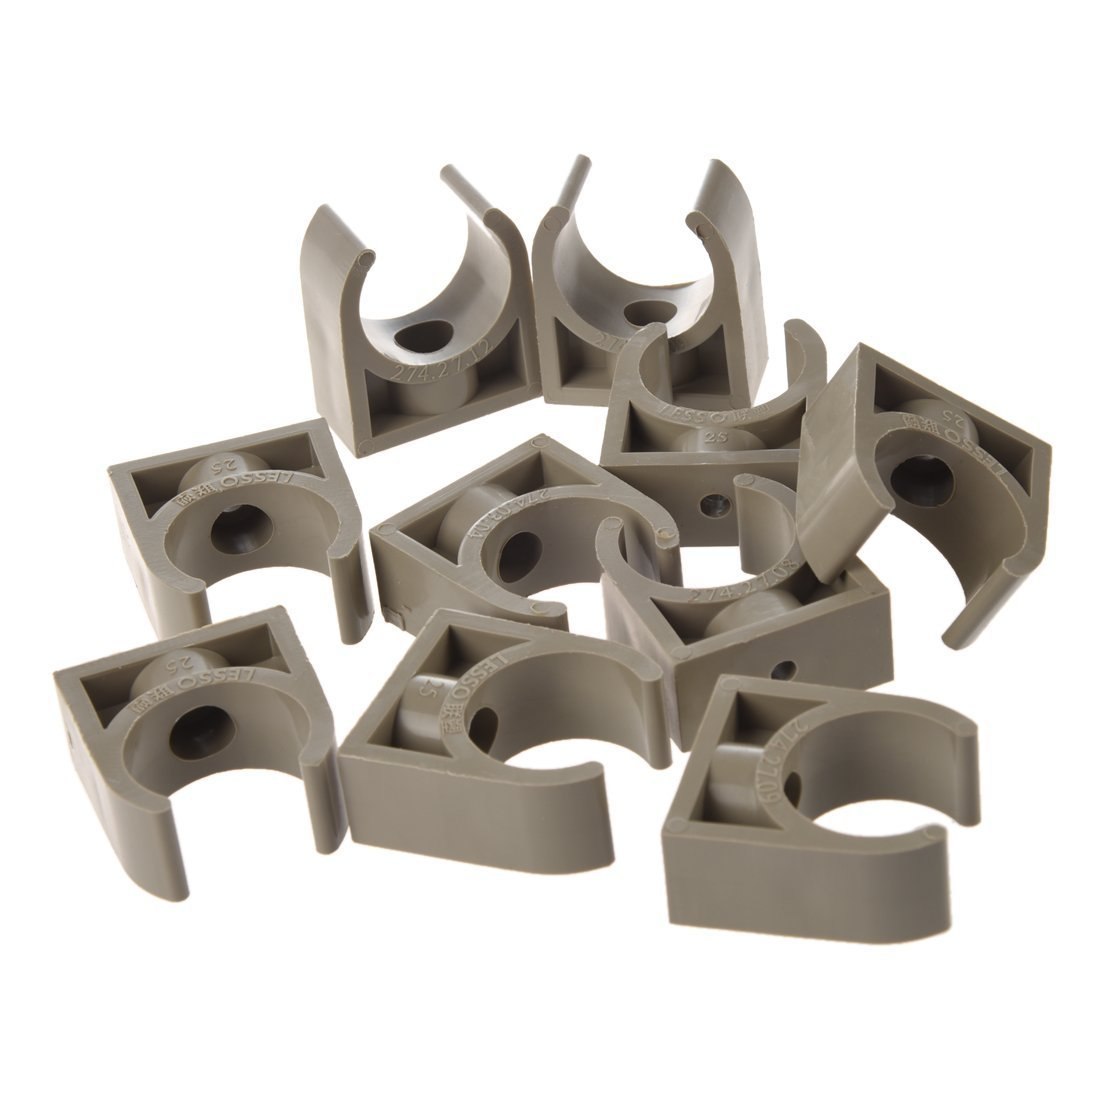 SODIAL(R) 10 Pcs 25mm Diameter PPR Water Supply Pipe Clamps Clips Fittings